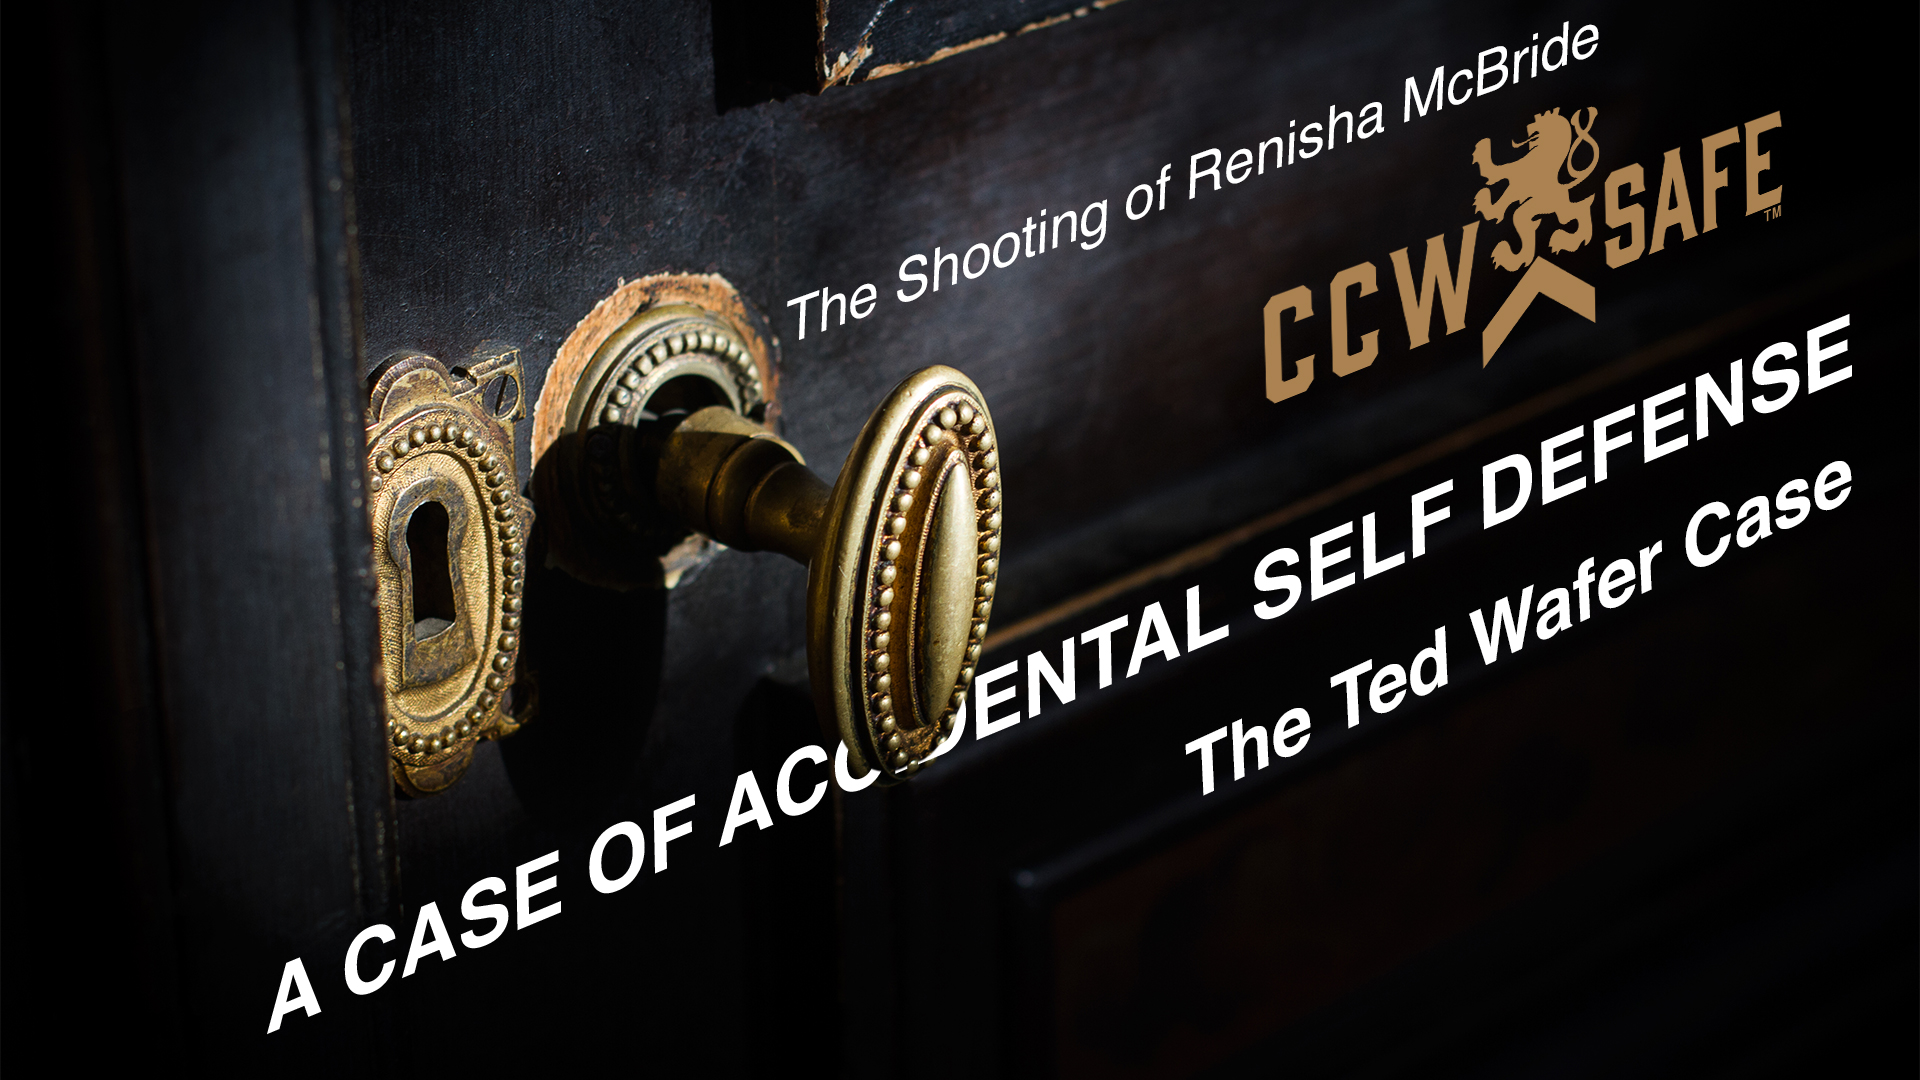 The Accidental Case of Self Defense- The Shooting of Renisha McBride-Location